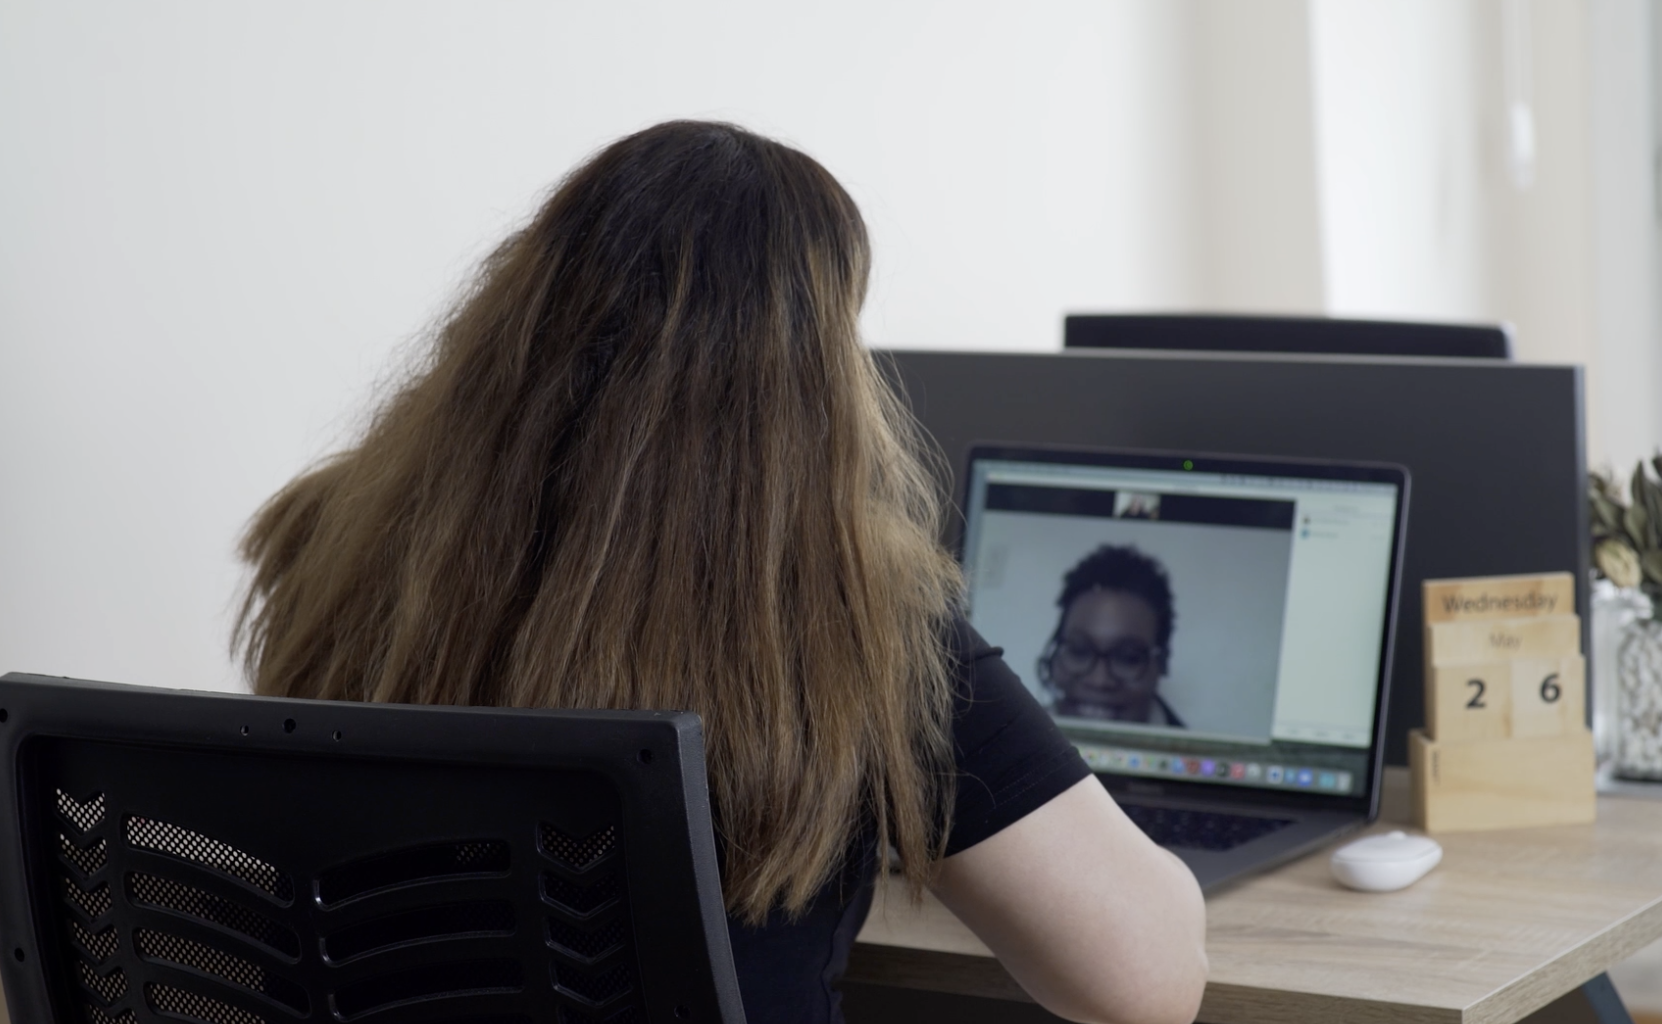 İrem Özkan on a Zoom call with a team member